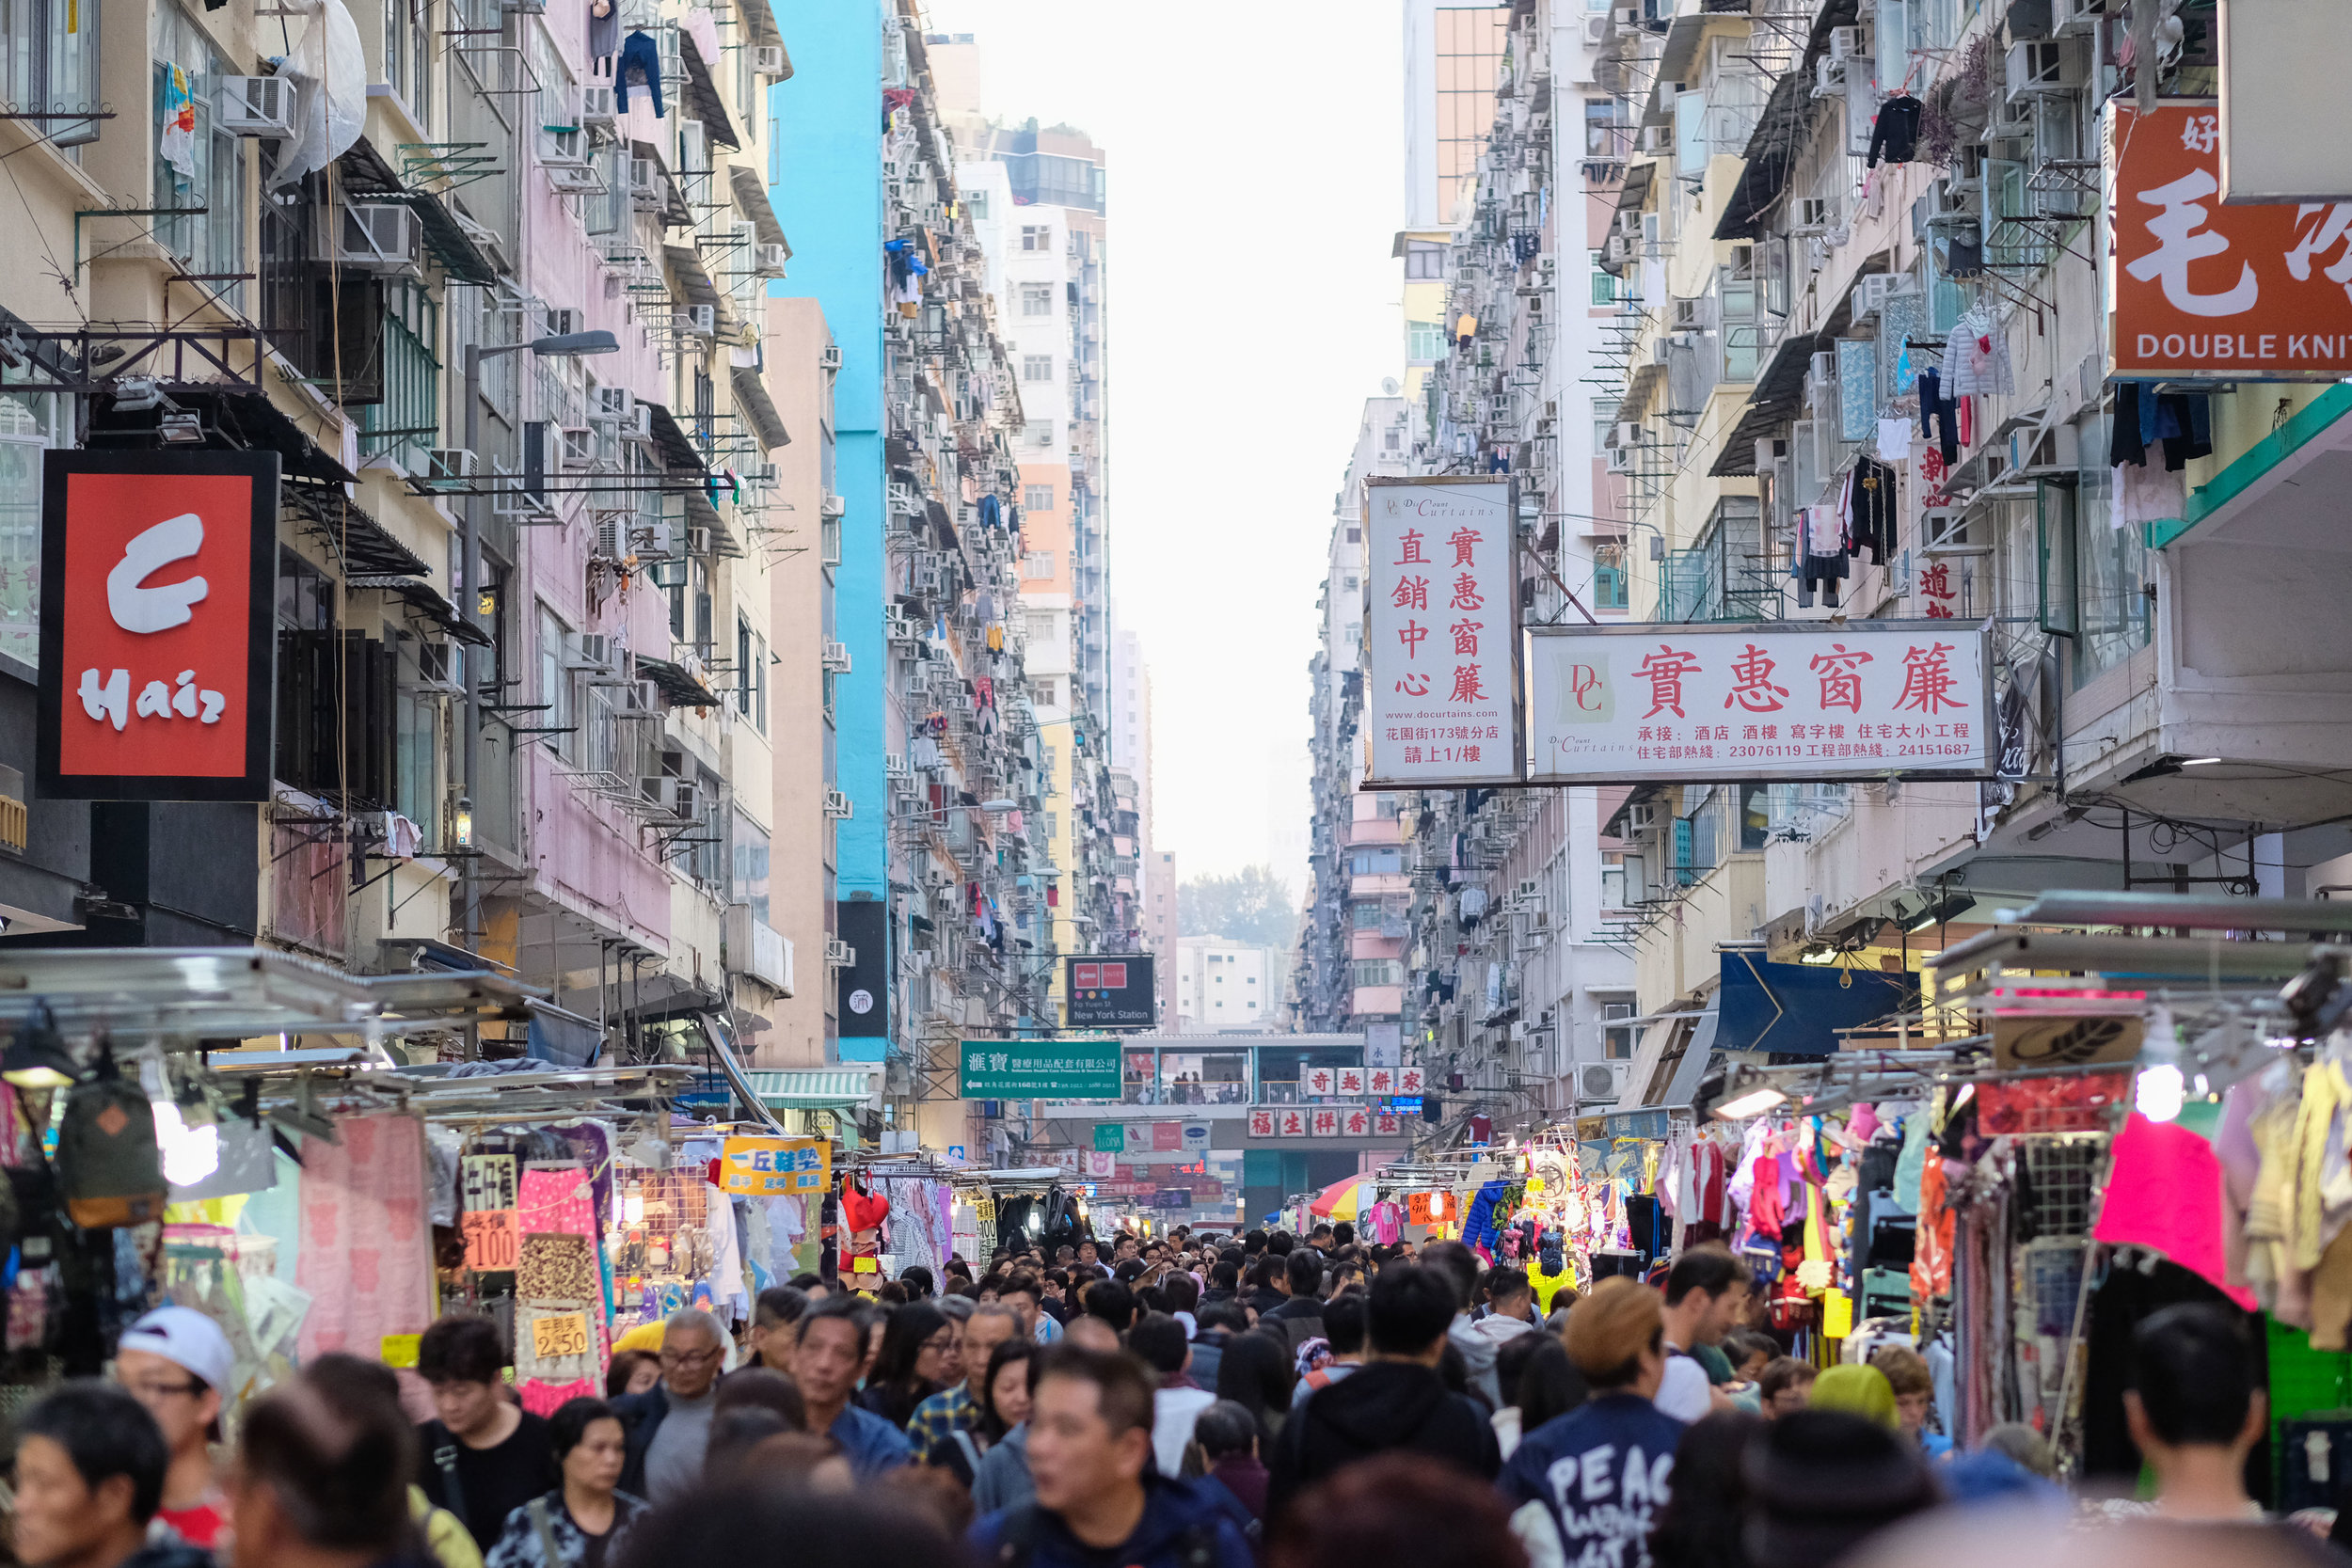 R&R Guide to Hong Kong - March 7th, 2018